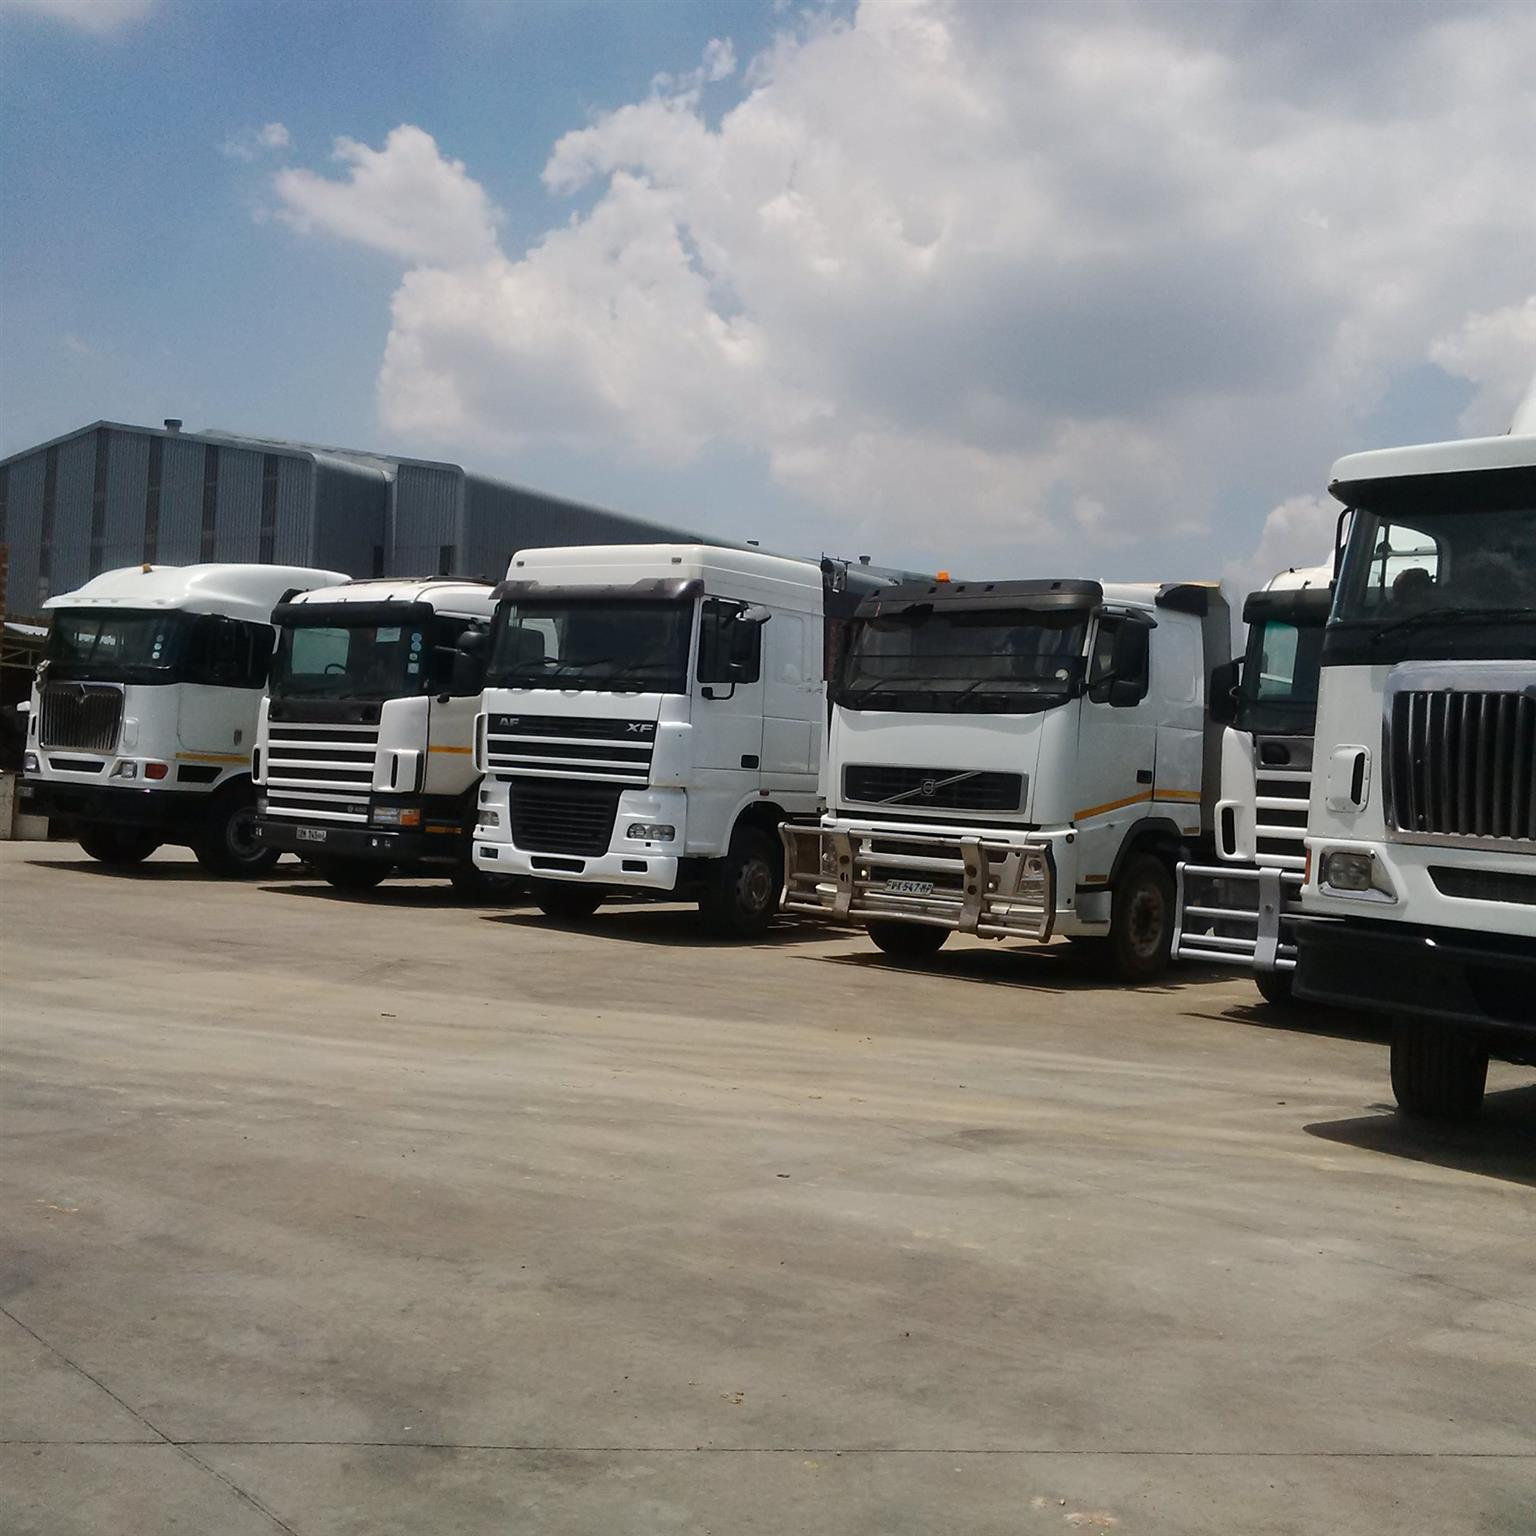 Clearance sale for December @ ZA Auto trucks and trailers